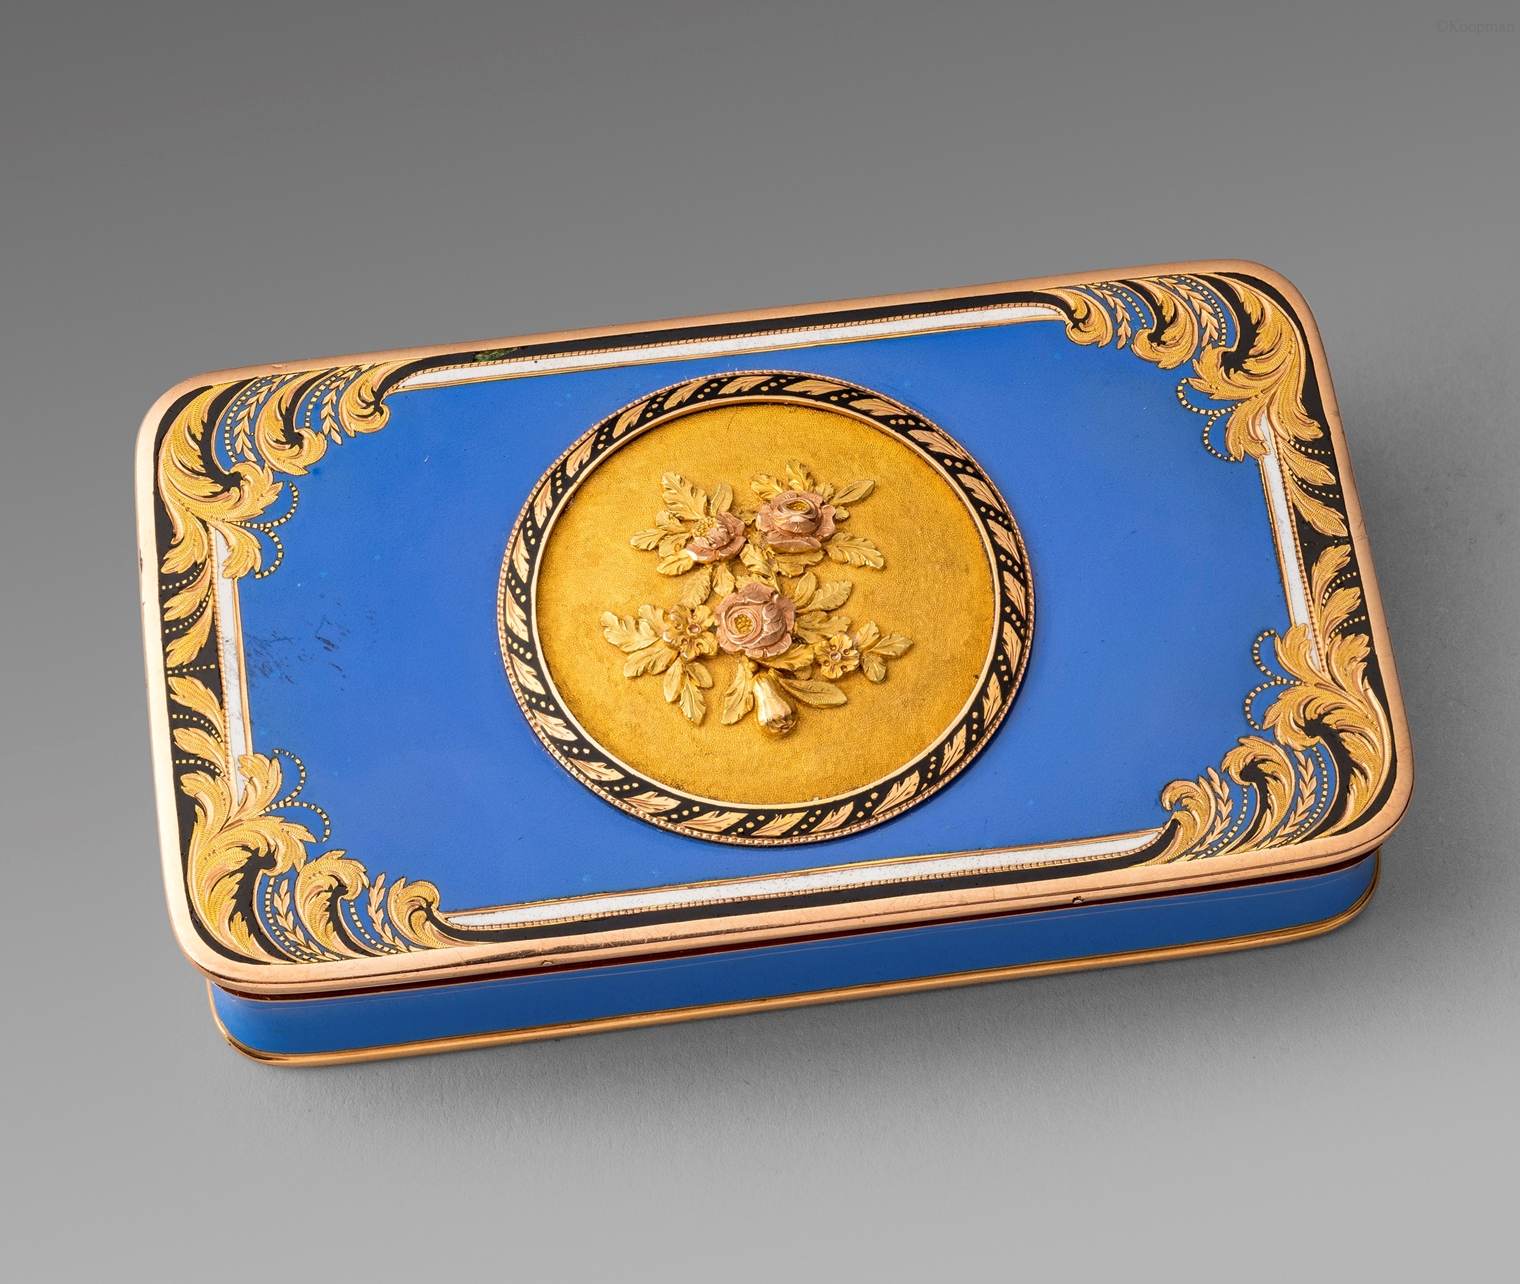 A Continental Gold & Enamel Snuff Box